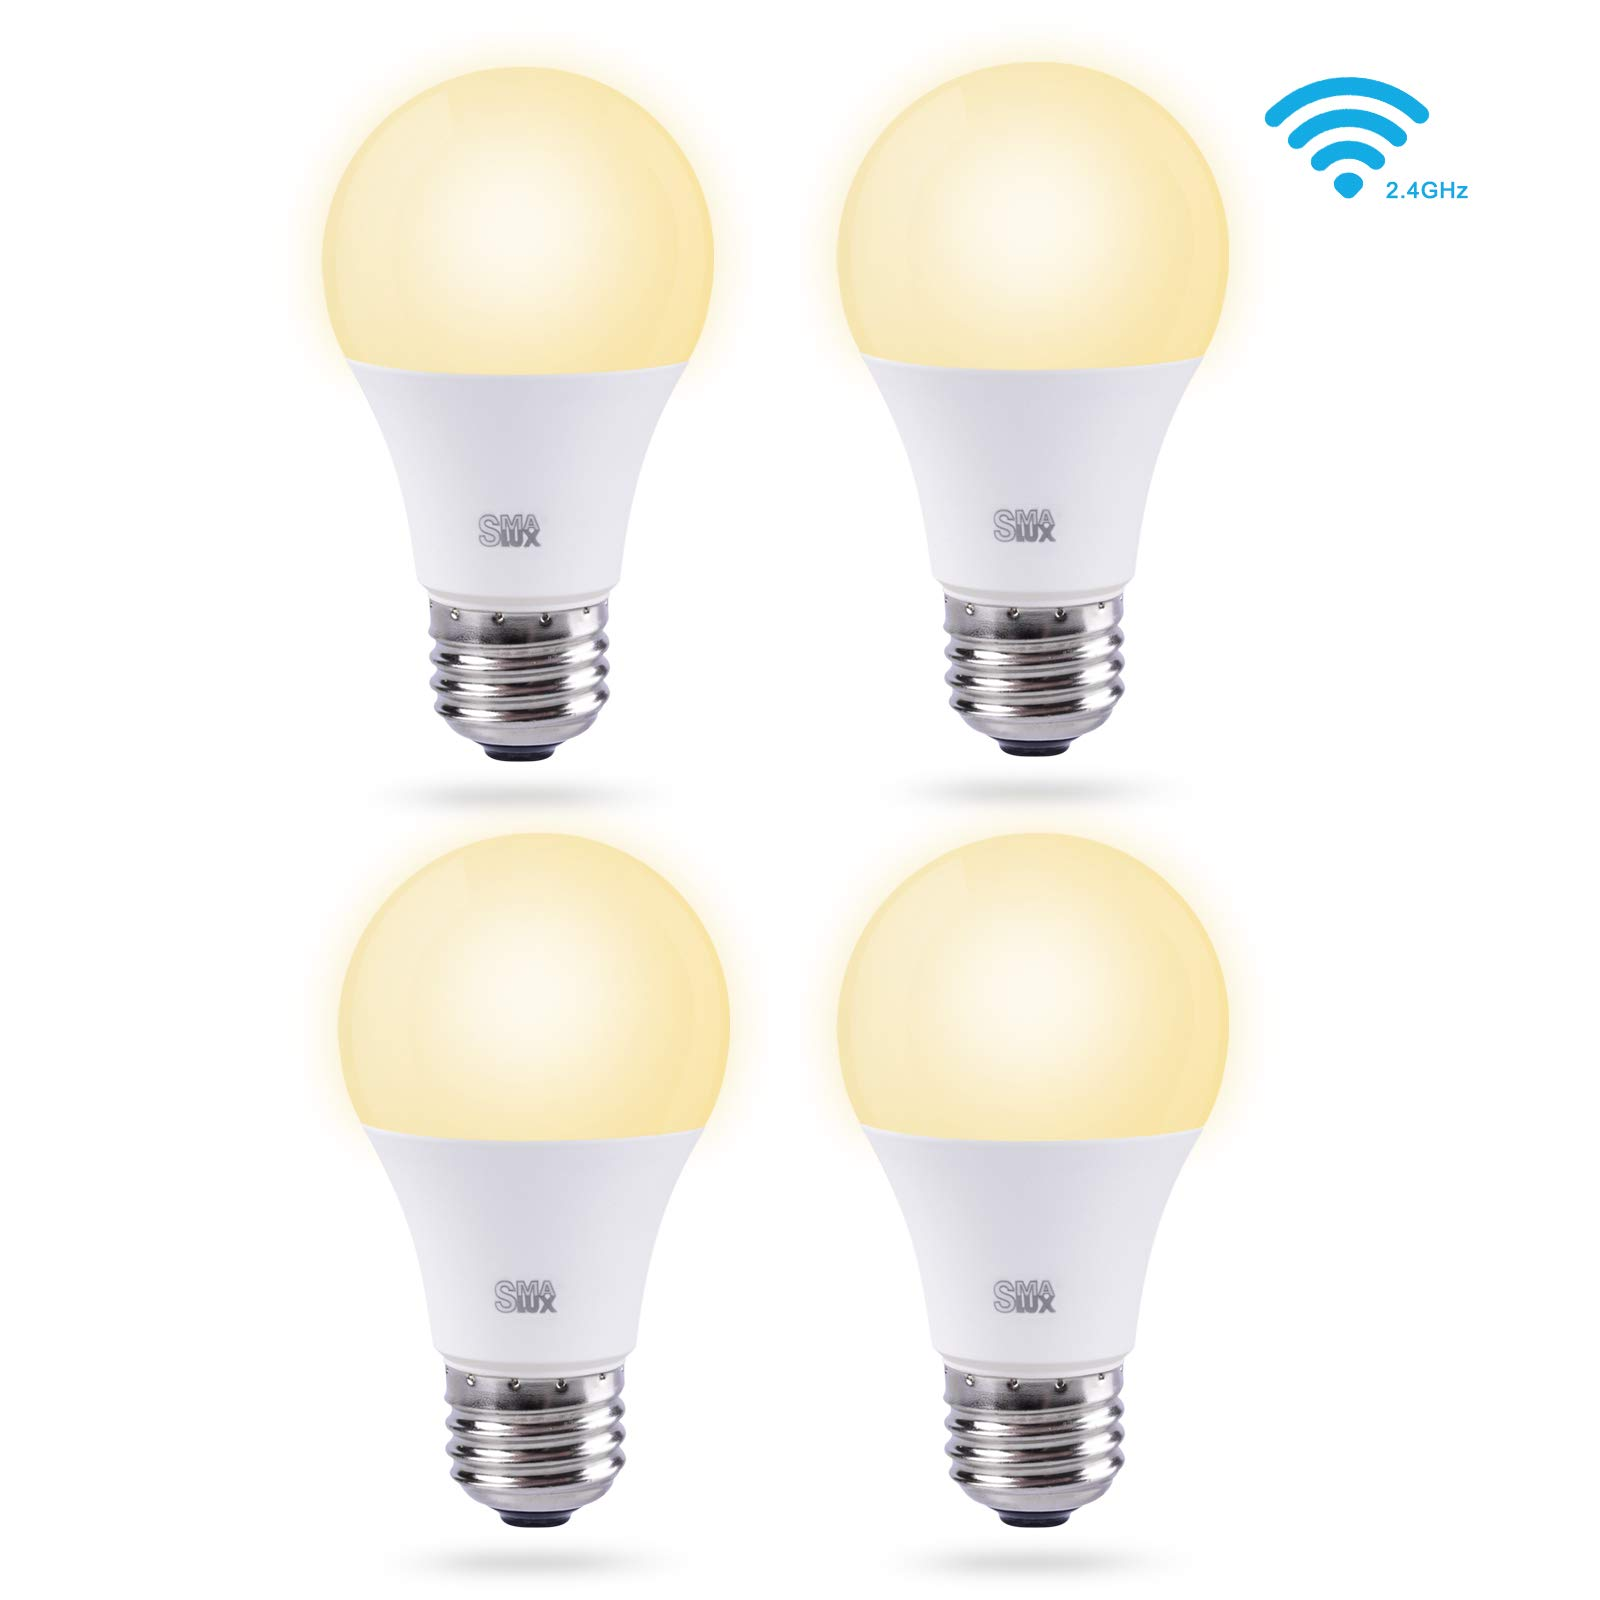 Smalux Smart WiFi LED Light Bulbs 4 Packs A19 E26 Warm White 36W 3200lm Dimmable Smart Home Lighting Bulb,Works with Alexa/Google Home/Smart Life APP,Voice and Remote Control Bulb,No Hub Required